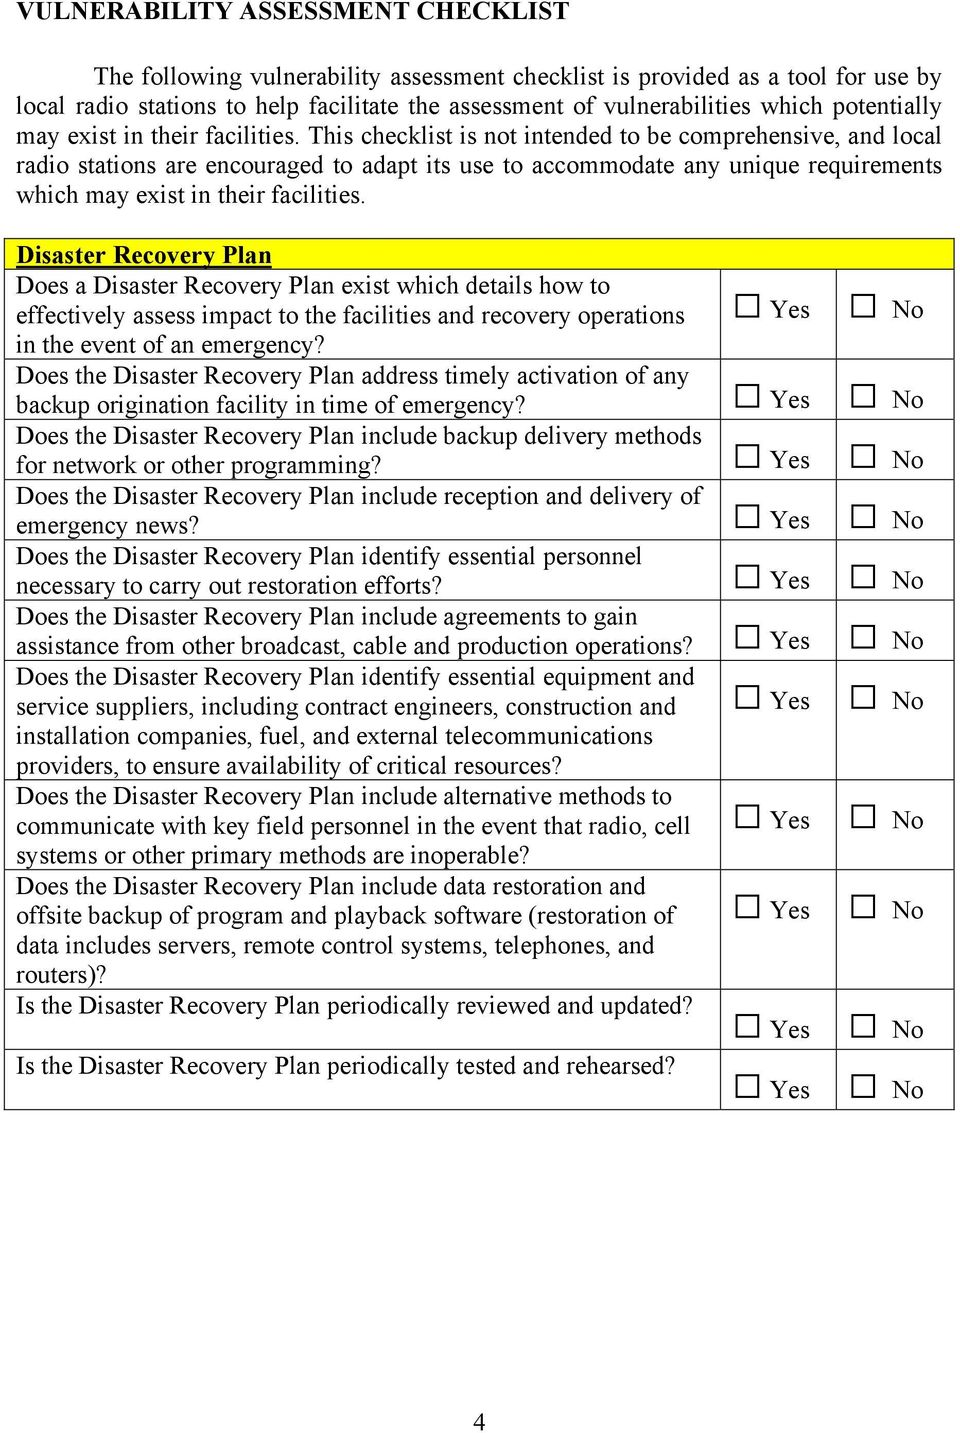 This checklist is not intended to be comprehensive, and local radio stations are encouraged to adapt its use to accommodate any unique requirements which may exist in their facilities.